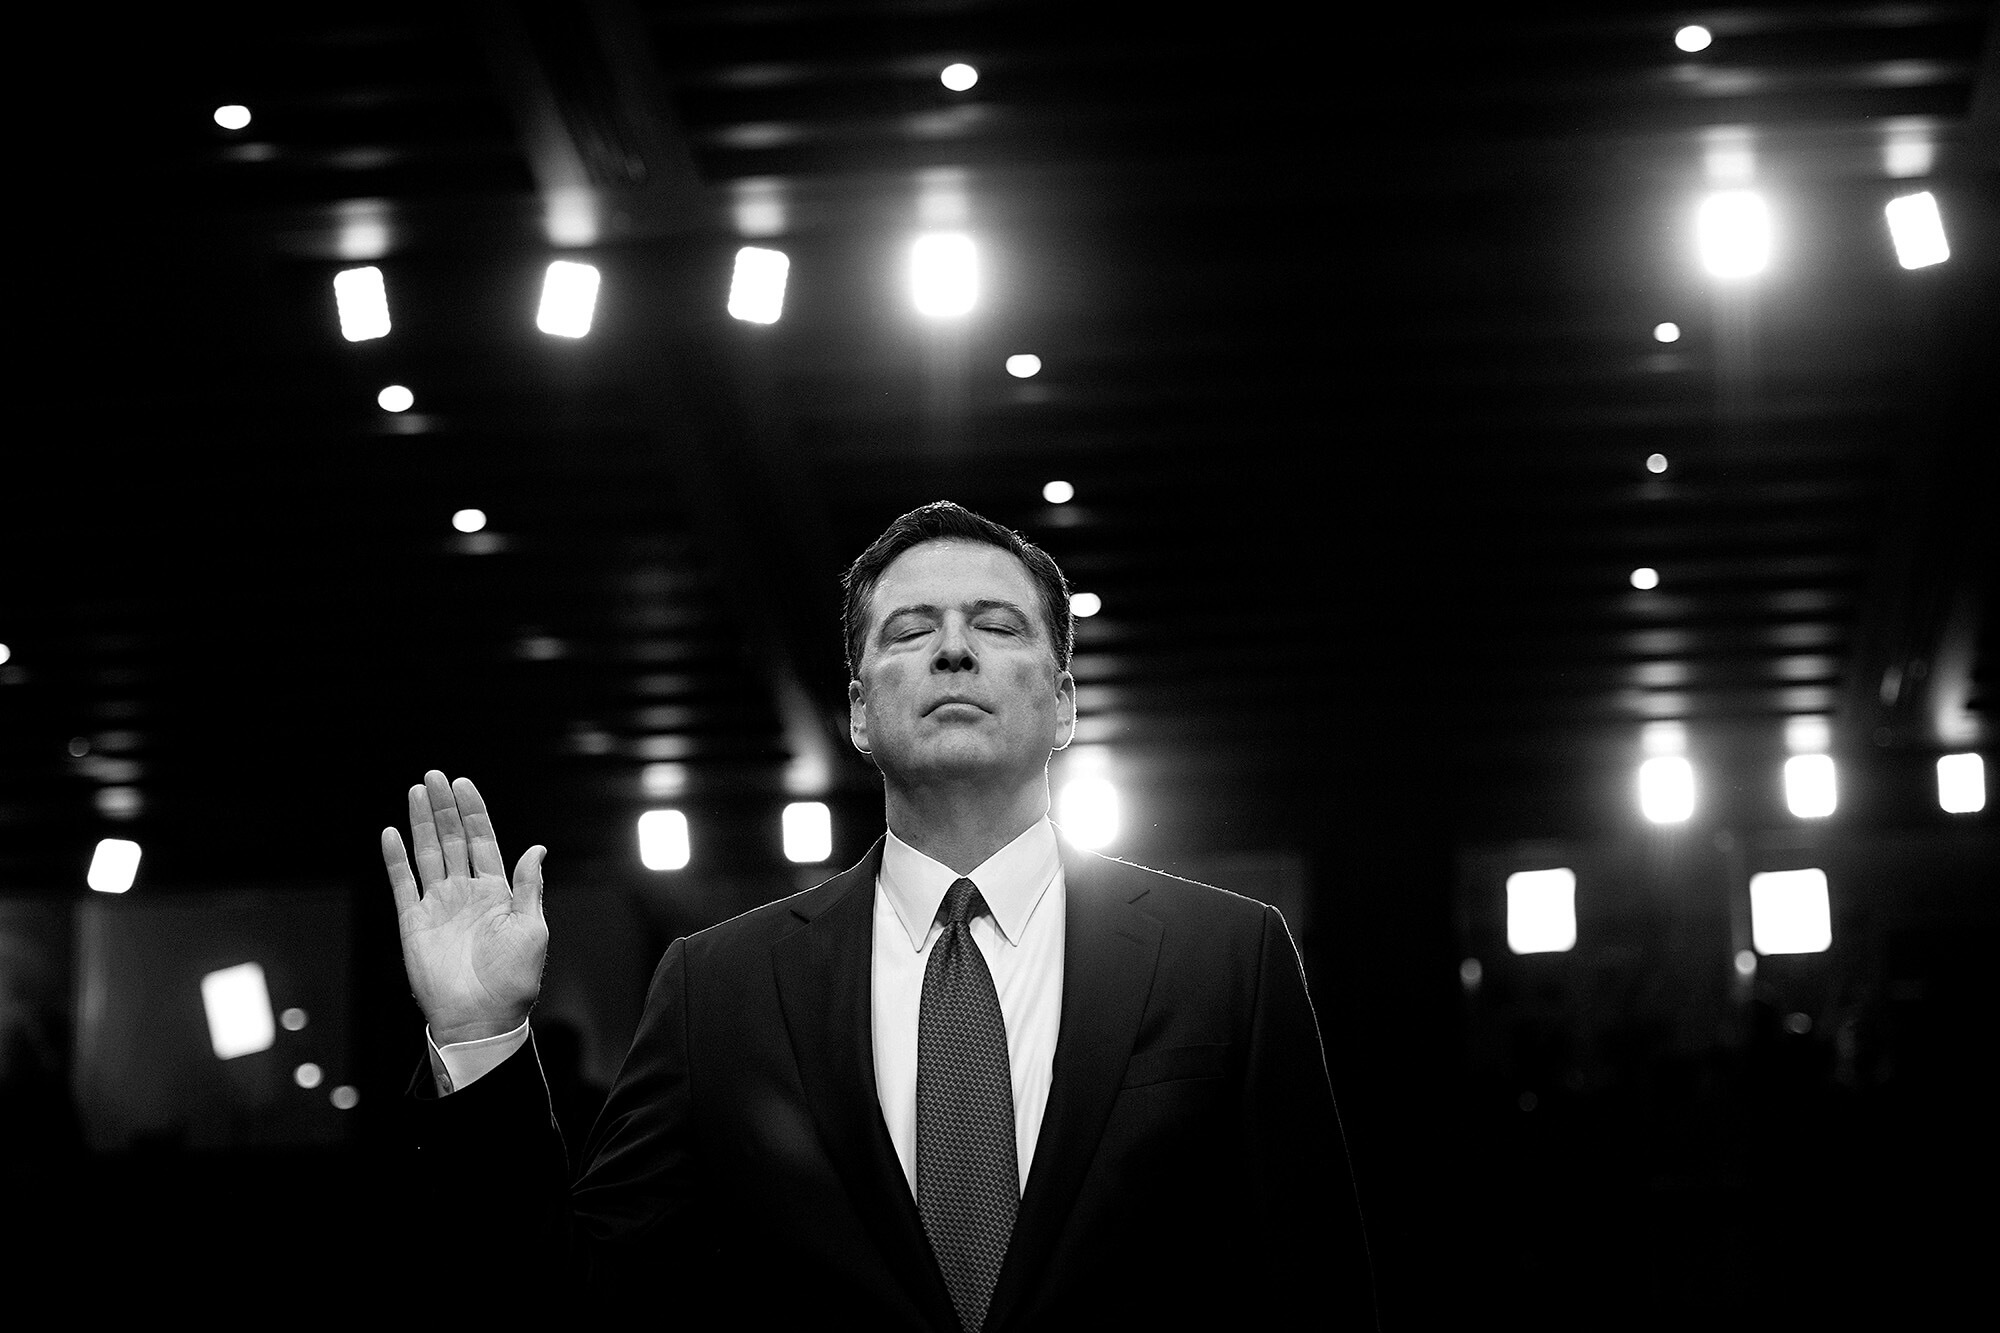 Trump fired then-FBI director James Comey and then admitted on television that he didn't like Comey's investigation into Russia's interference in the 2016 election. Yet Trump managed to stay in office for an entire term despite this obstruction of justice.